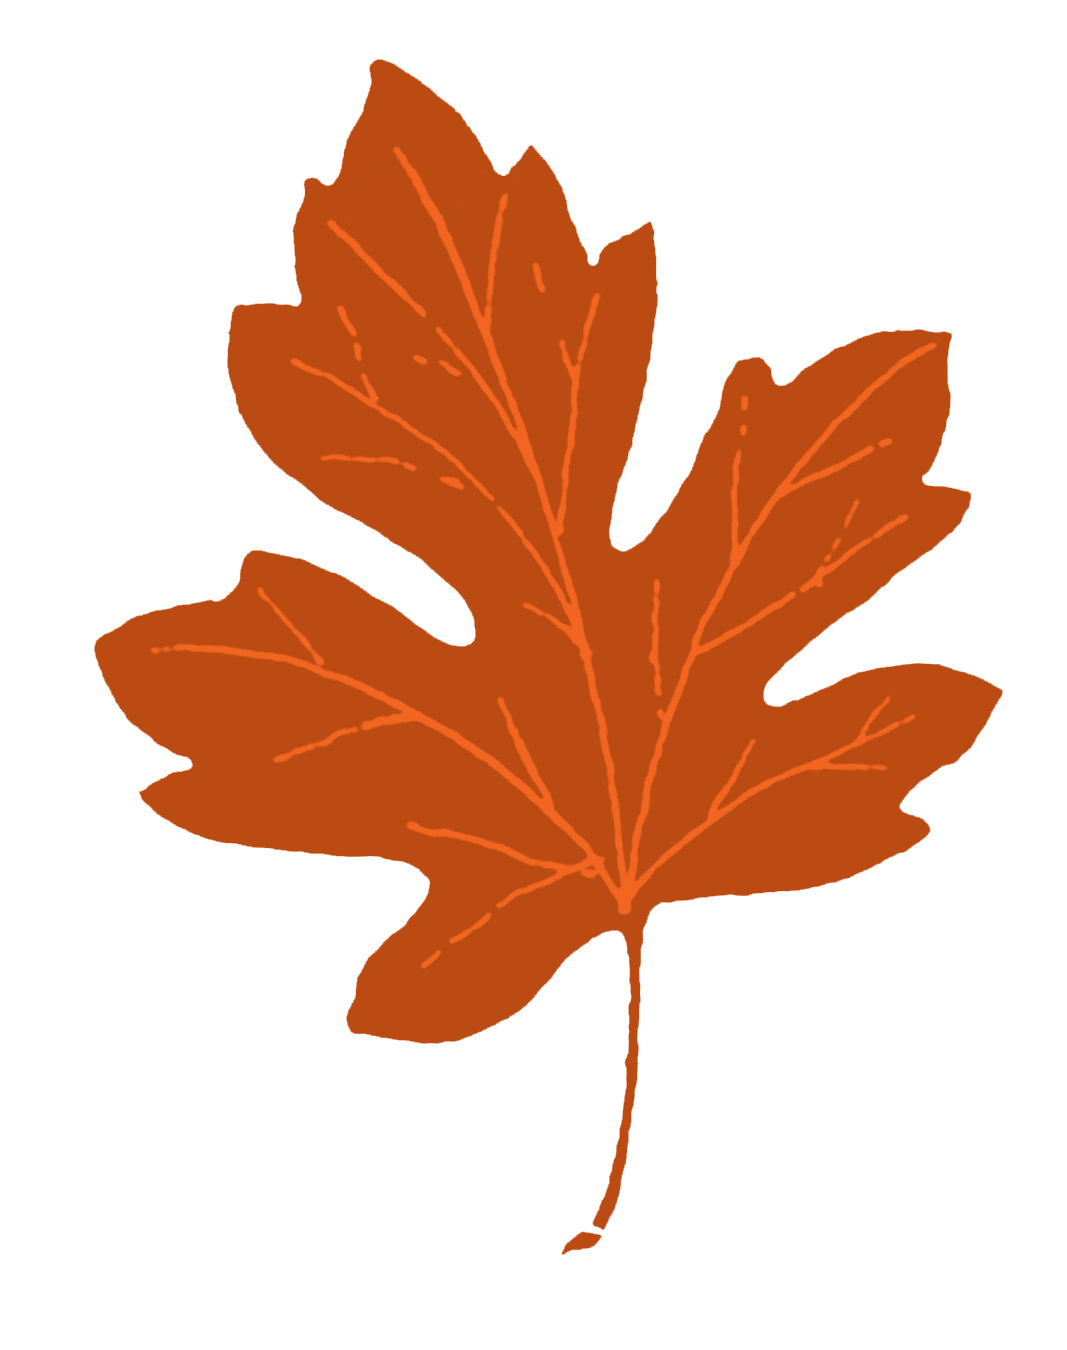 Leaves clipart single You cliparts clipart 2 clipart